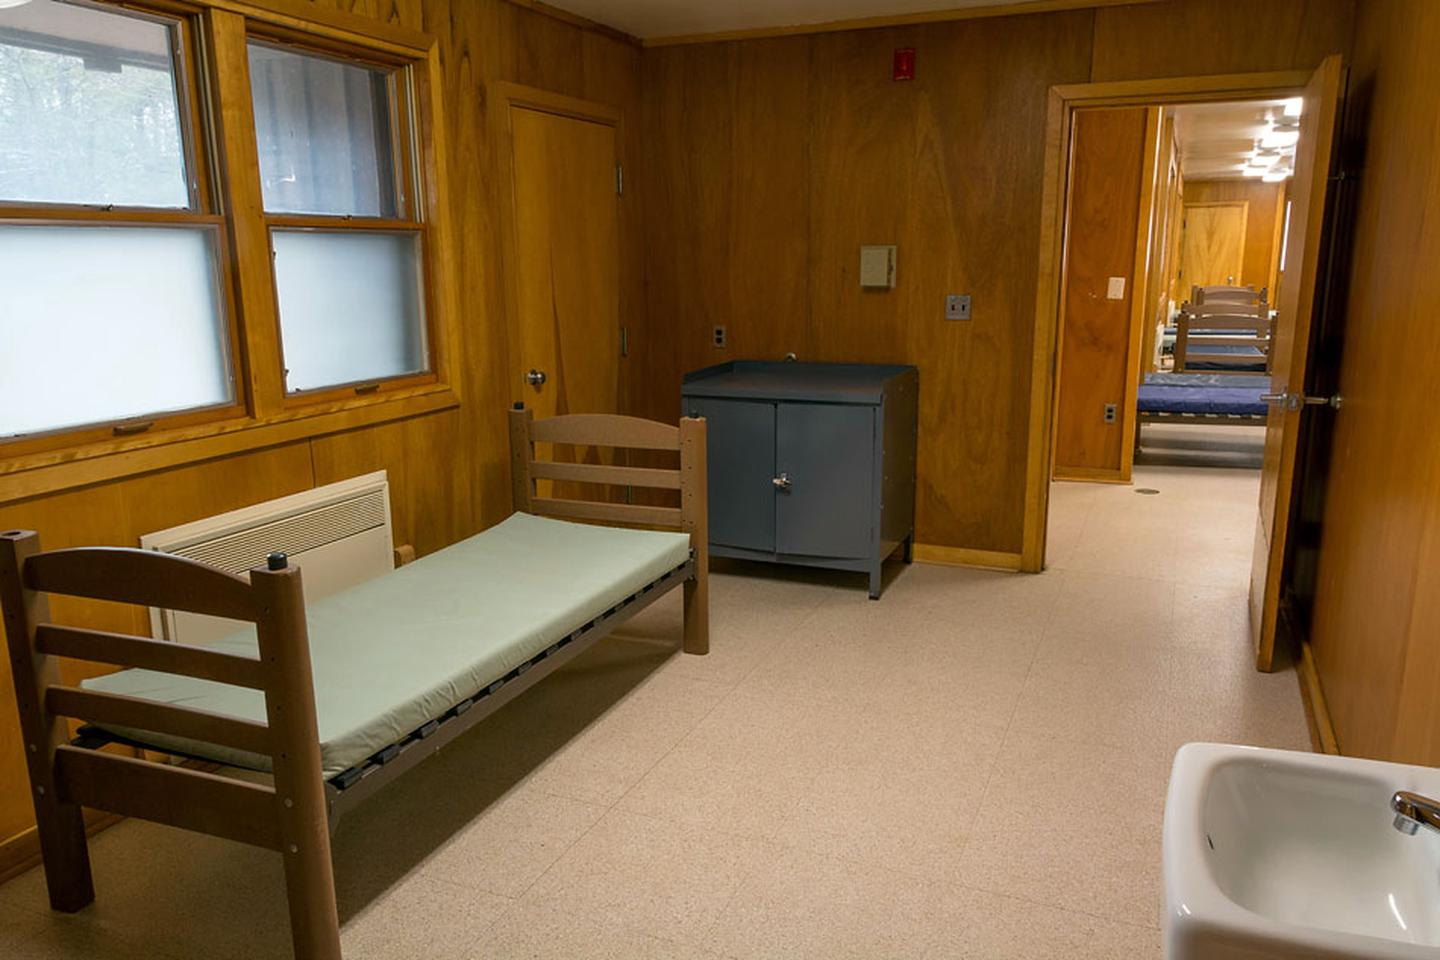 Individual dormitory room, vinyl floor, wooden walls, and one double window. One single bed with vinyl covered mattress, metal storage unit, and small porcelain wall sink.                                                                                There are 2 individual rooms in each of the 4 dormitories.  These rooms contain a single bed with vinyl mattress, a closet, metal storage unit, small sink, wall mirror and wall mounted writing area (not visible)